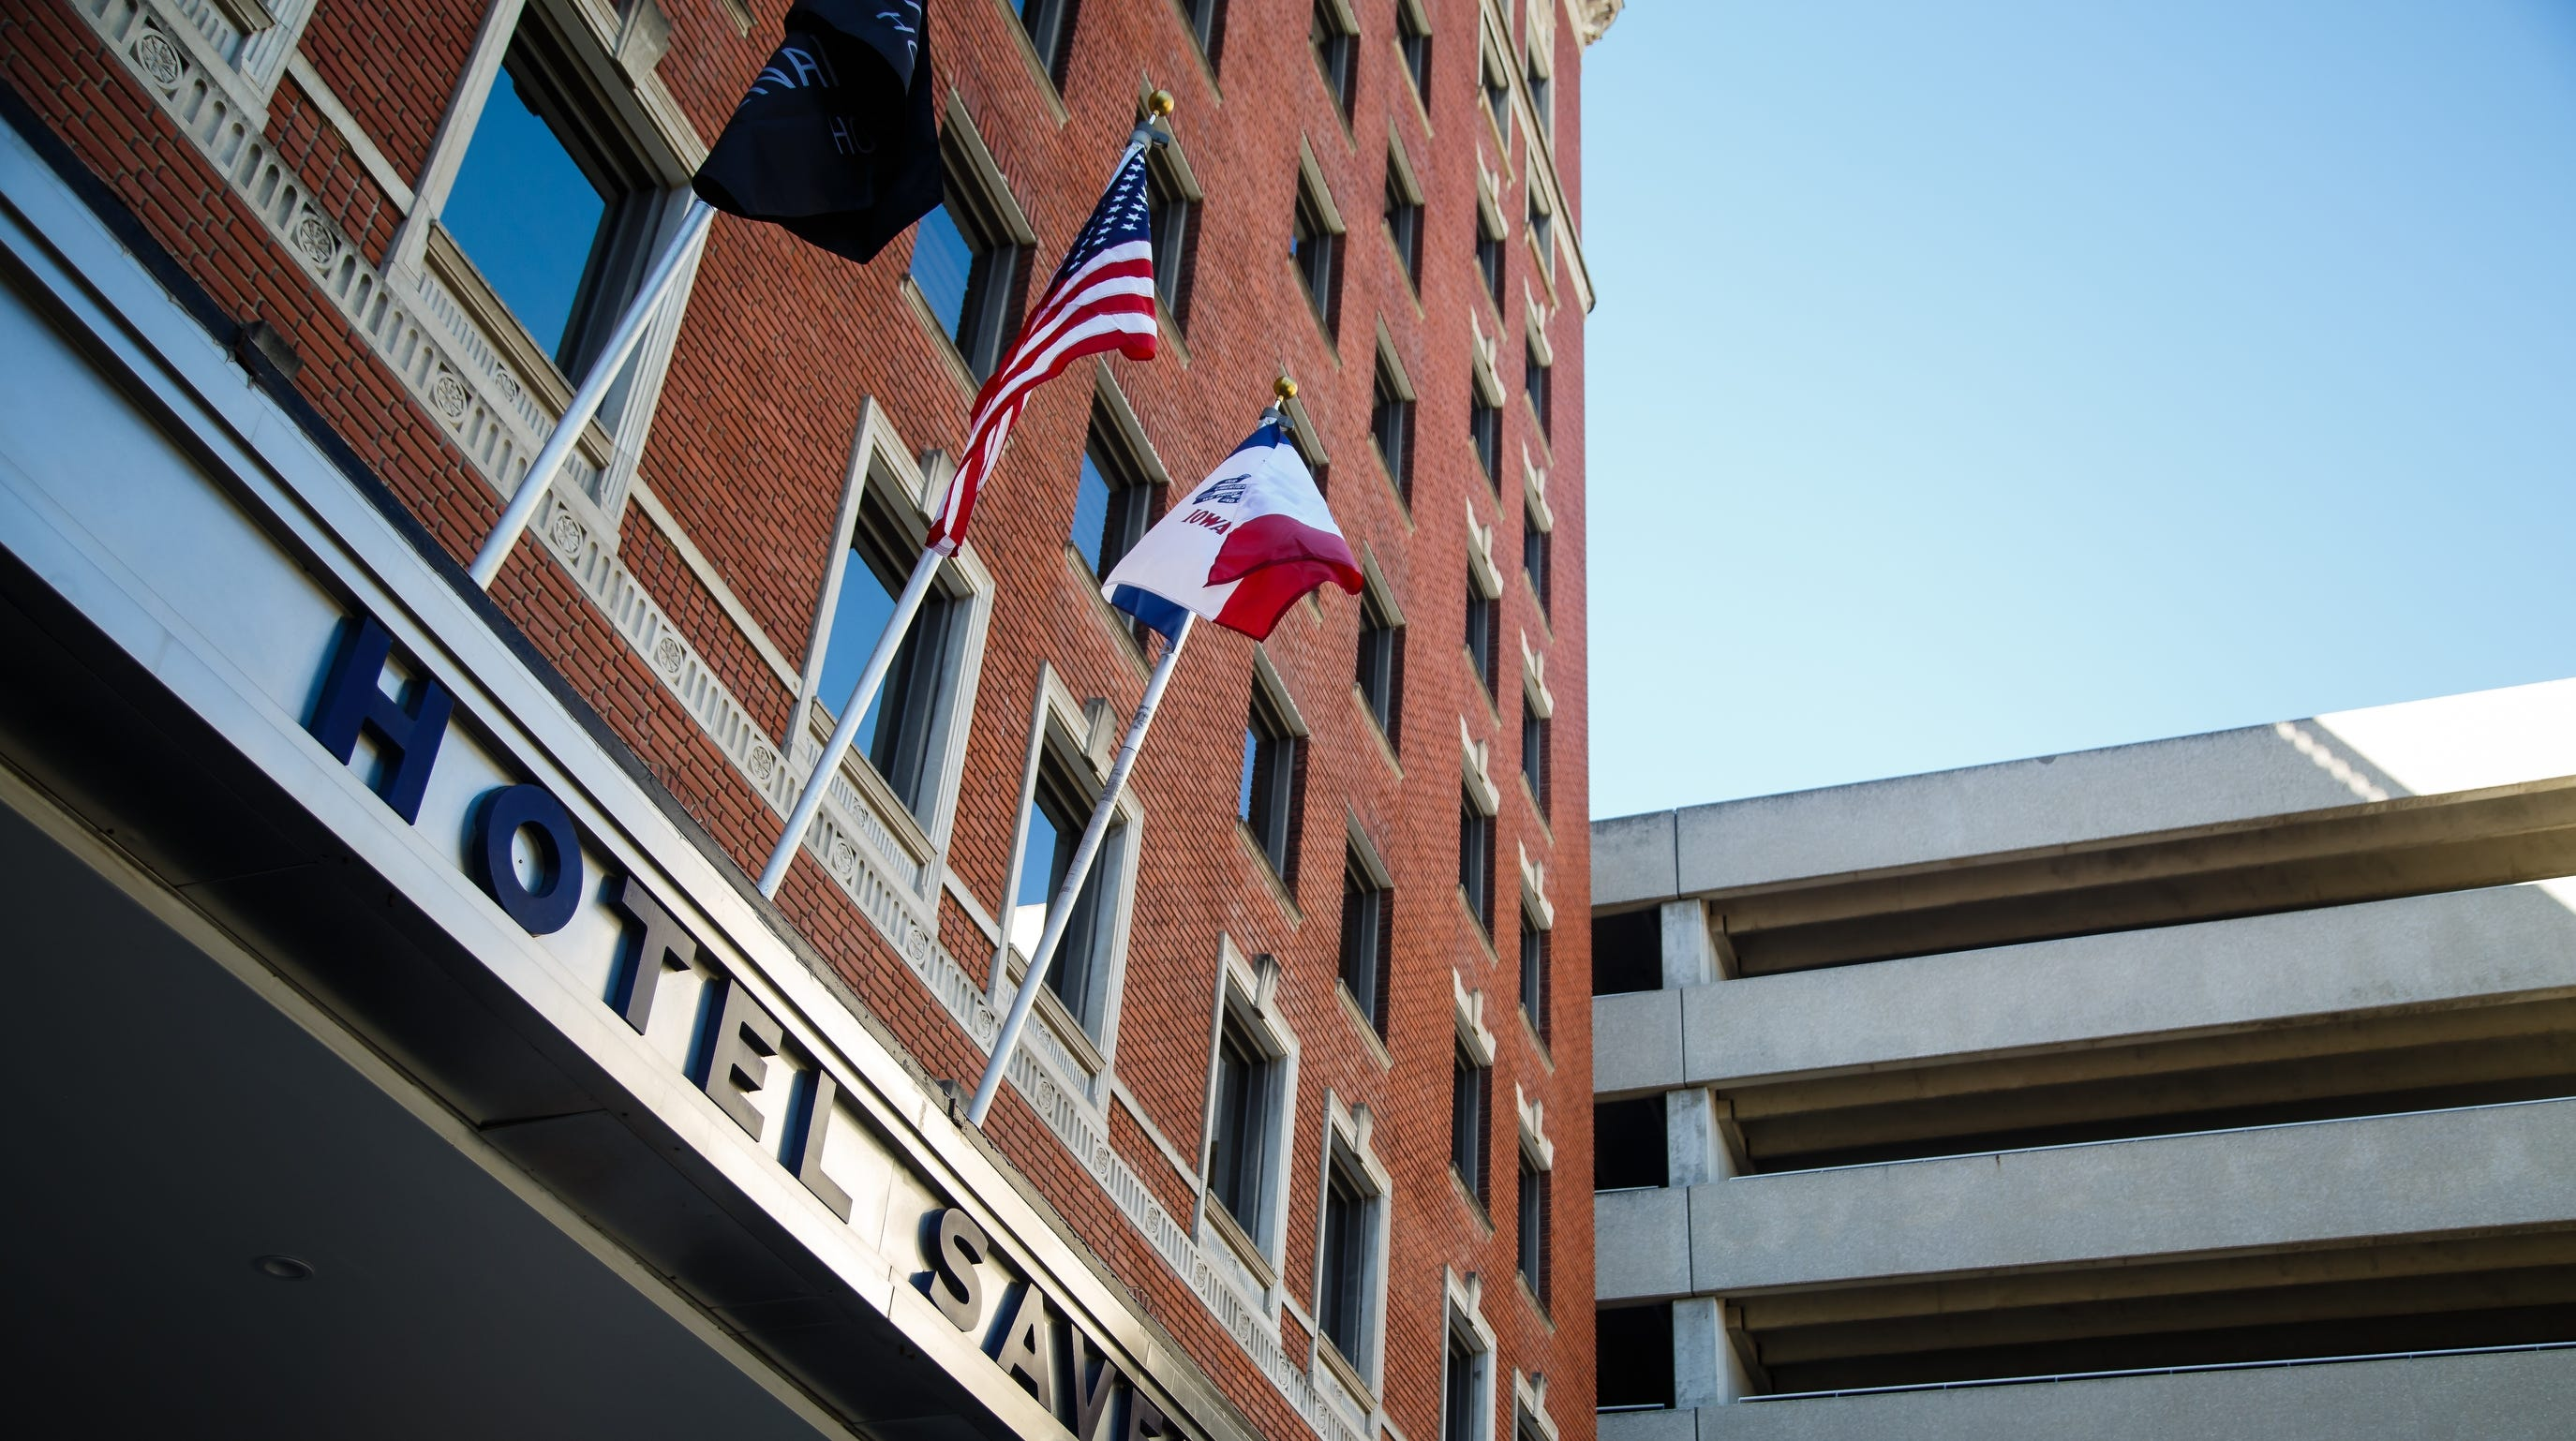 Past the 2-year renovation, historic Savery Hotel is taking reservations